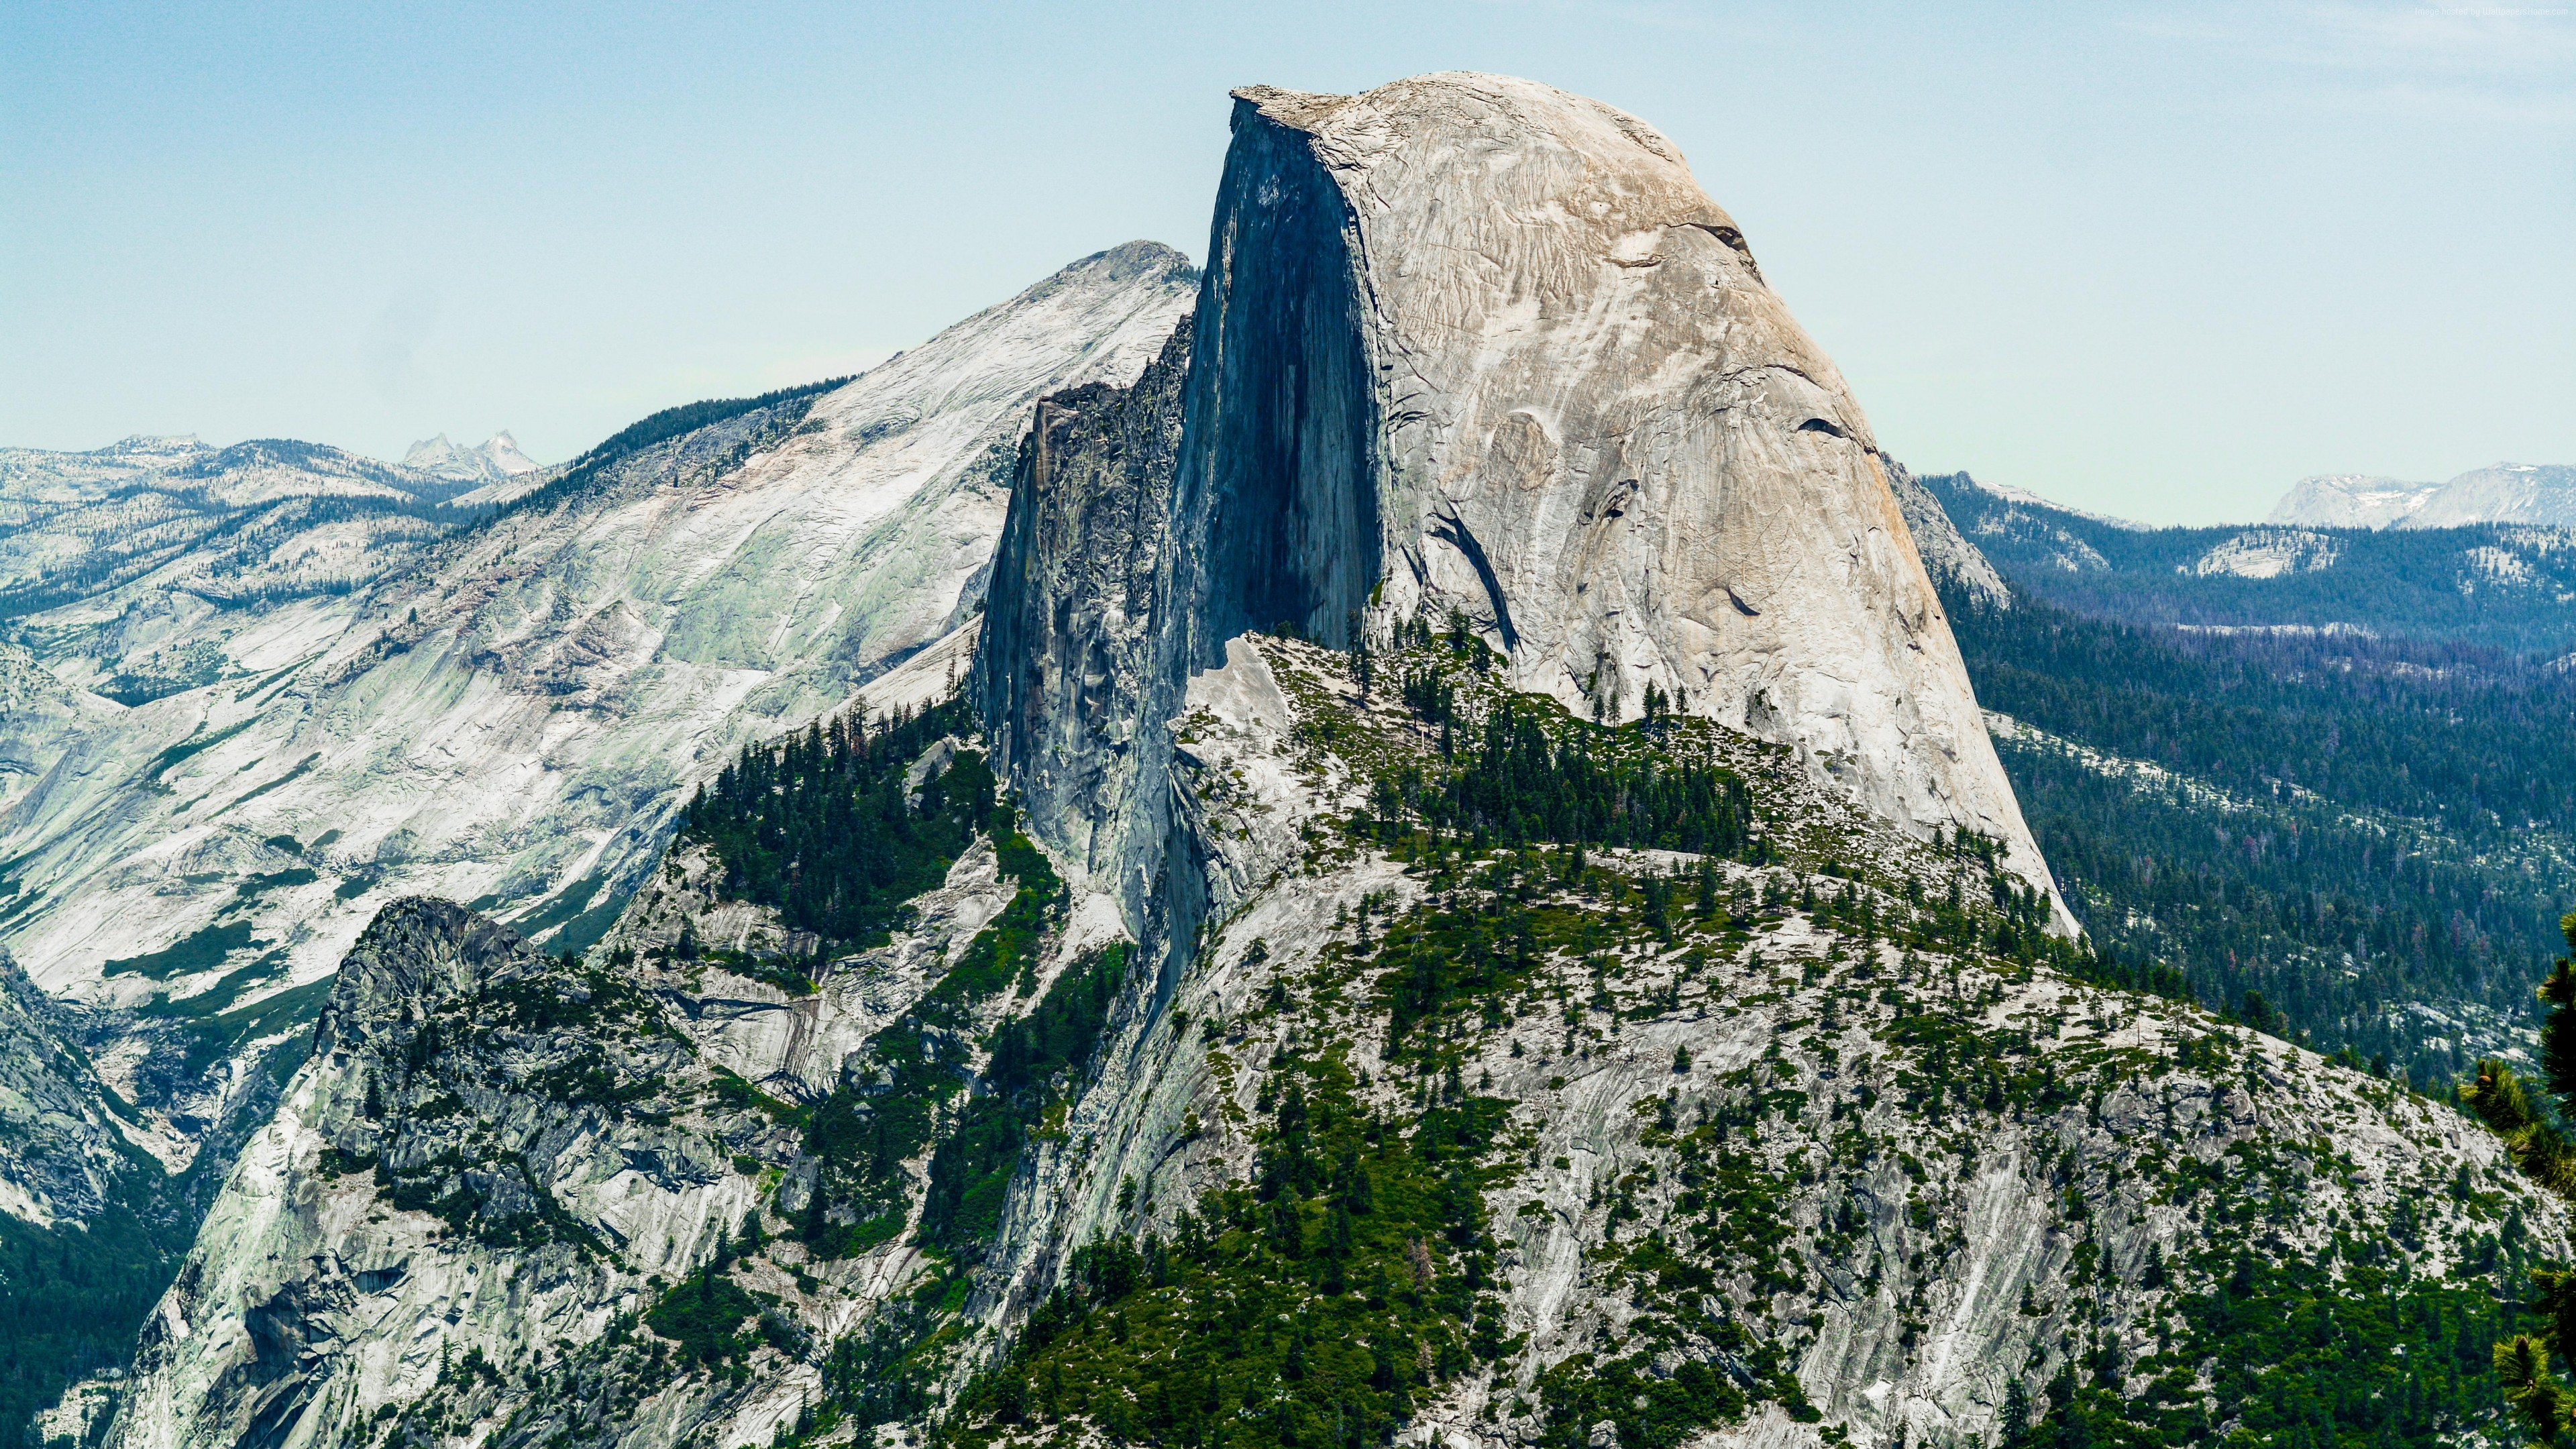 Wallpaper%20Half%20Dome,%20mountain,%20Yosemite,%20National%20Park,%20California,%20forest,%205k,%20Travel%205237016293